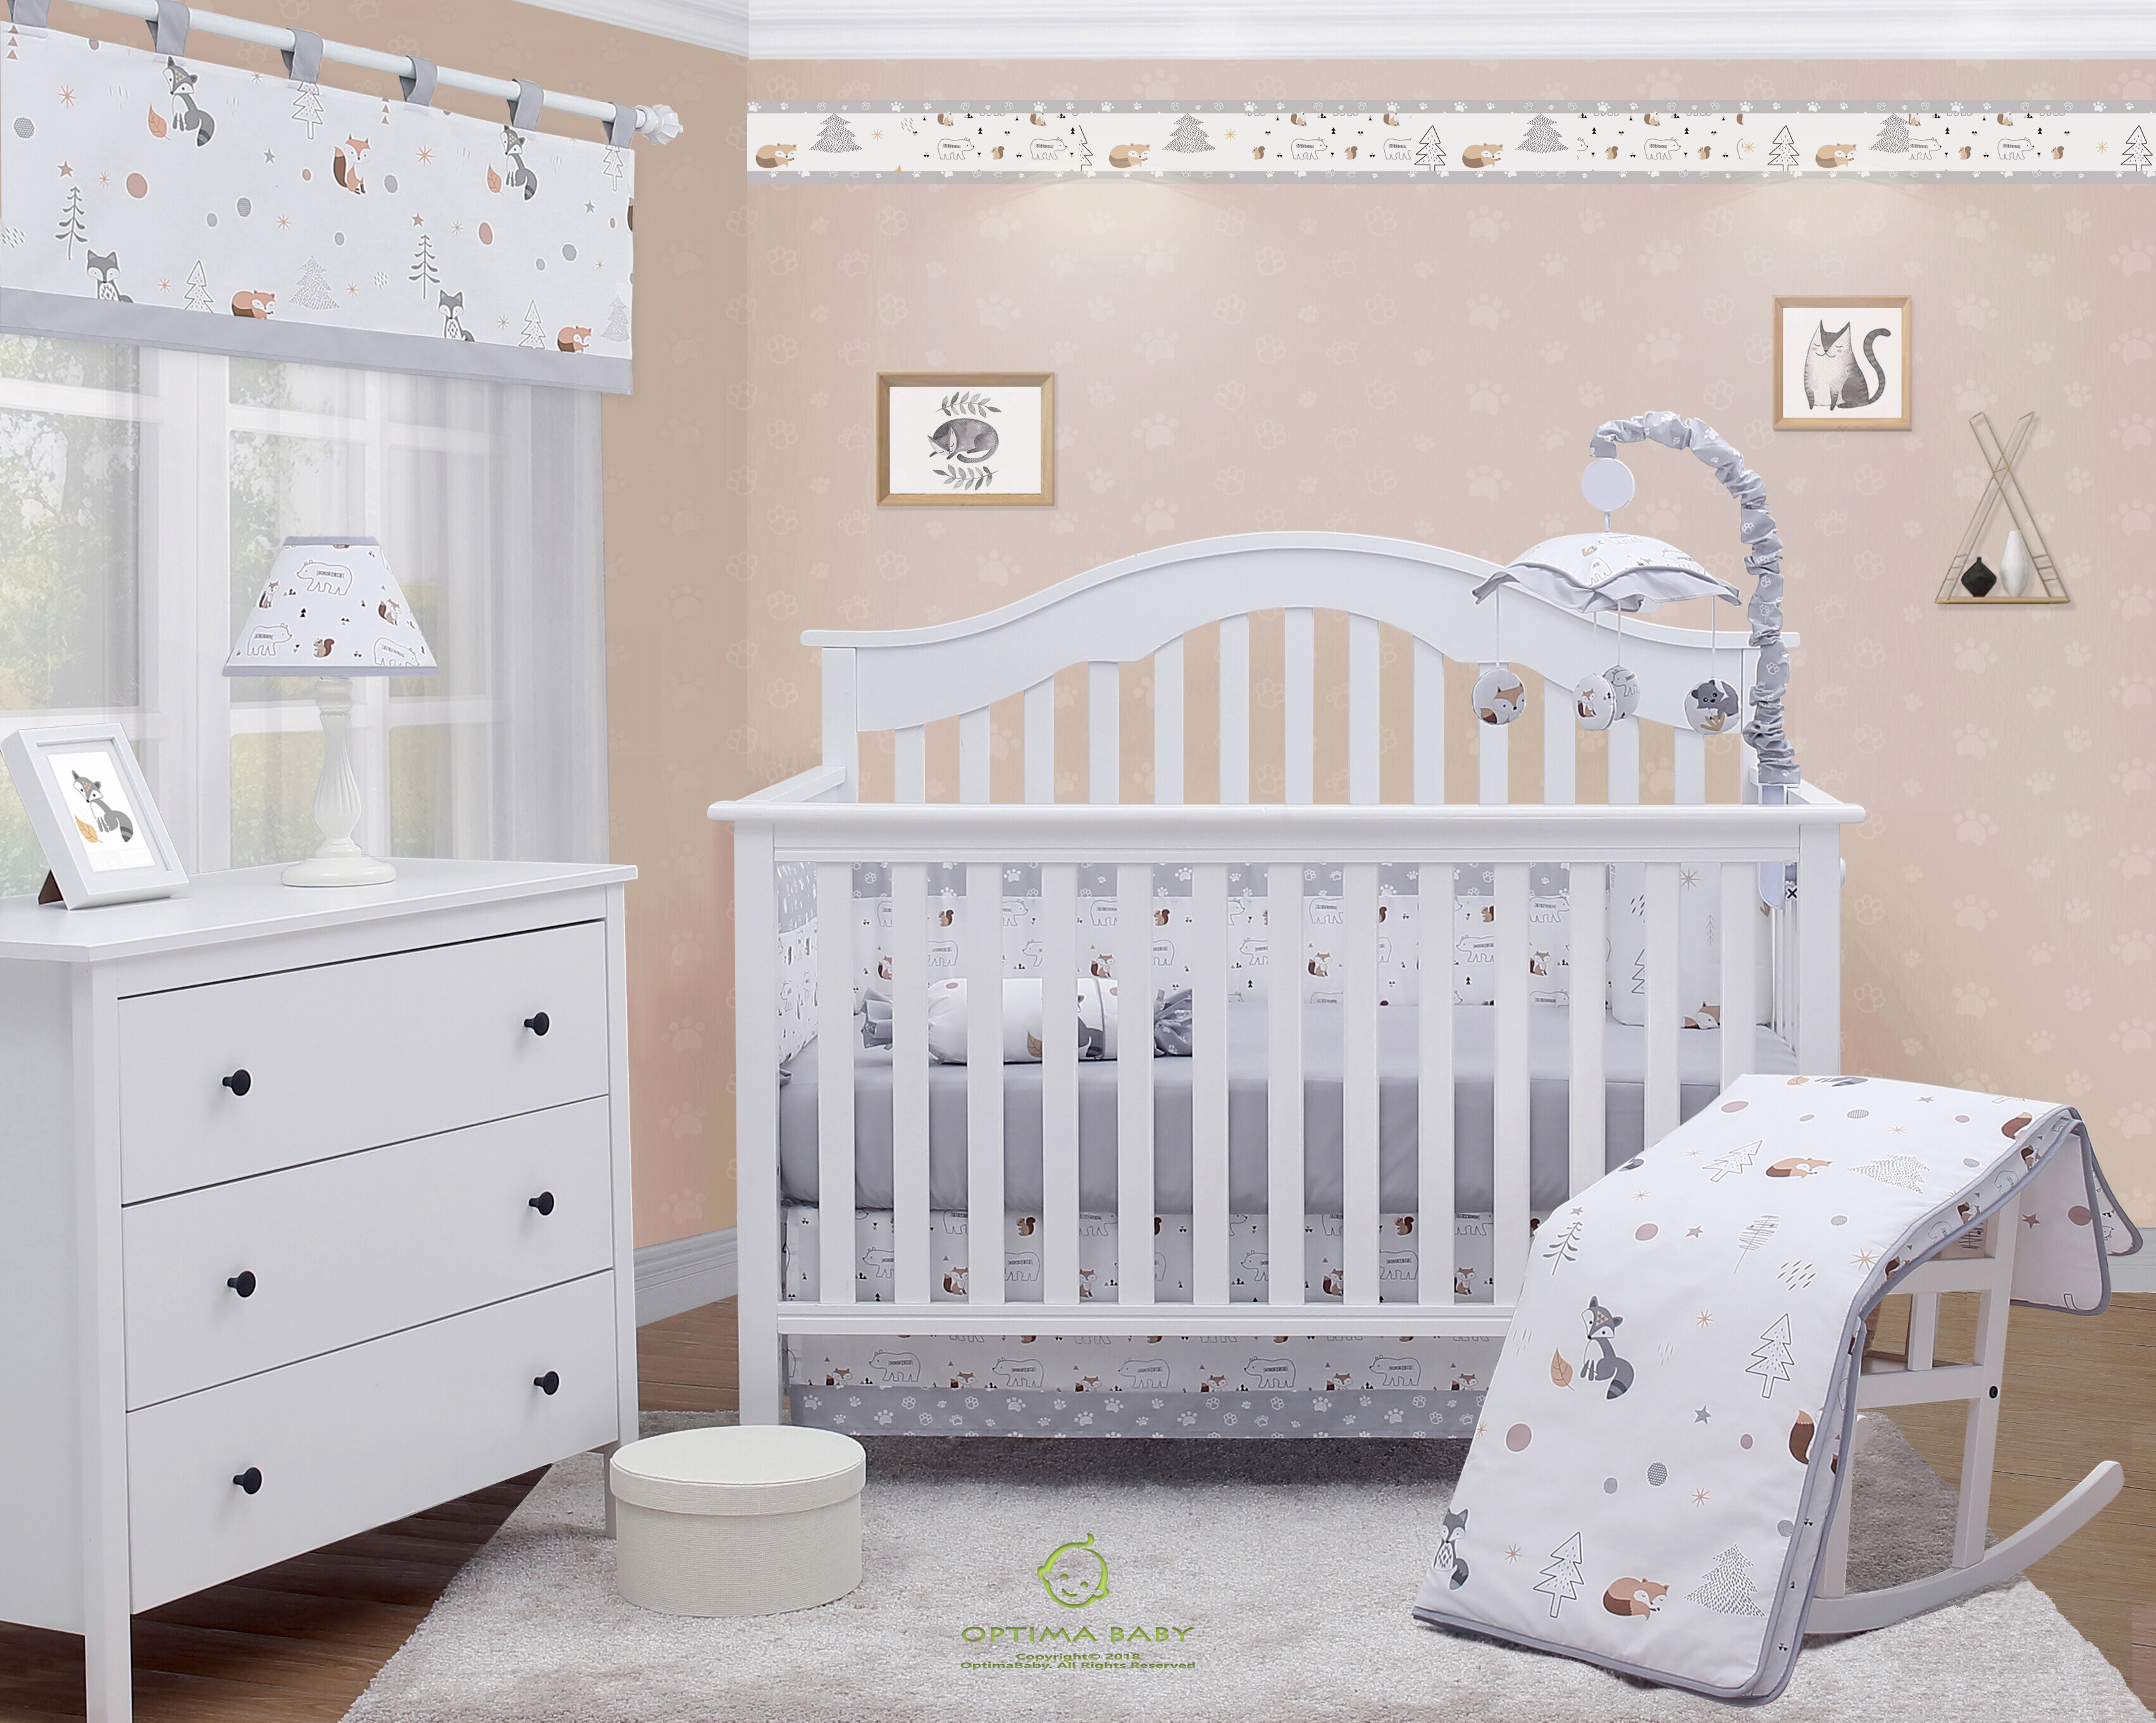 In Design; Crib Cotton Five Piece Kit Crib Bed Cotton Removable And Washable Childrens Bedding Package Novel